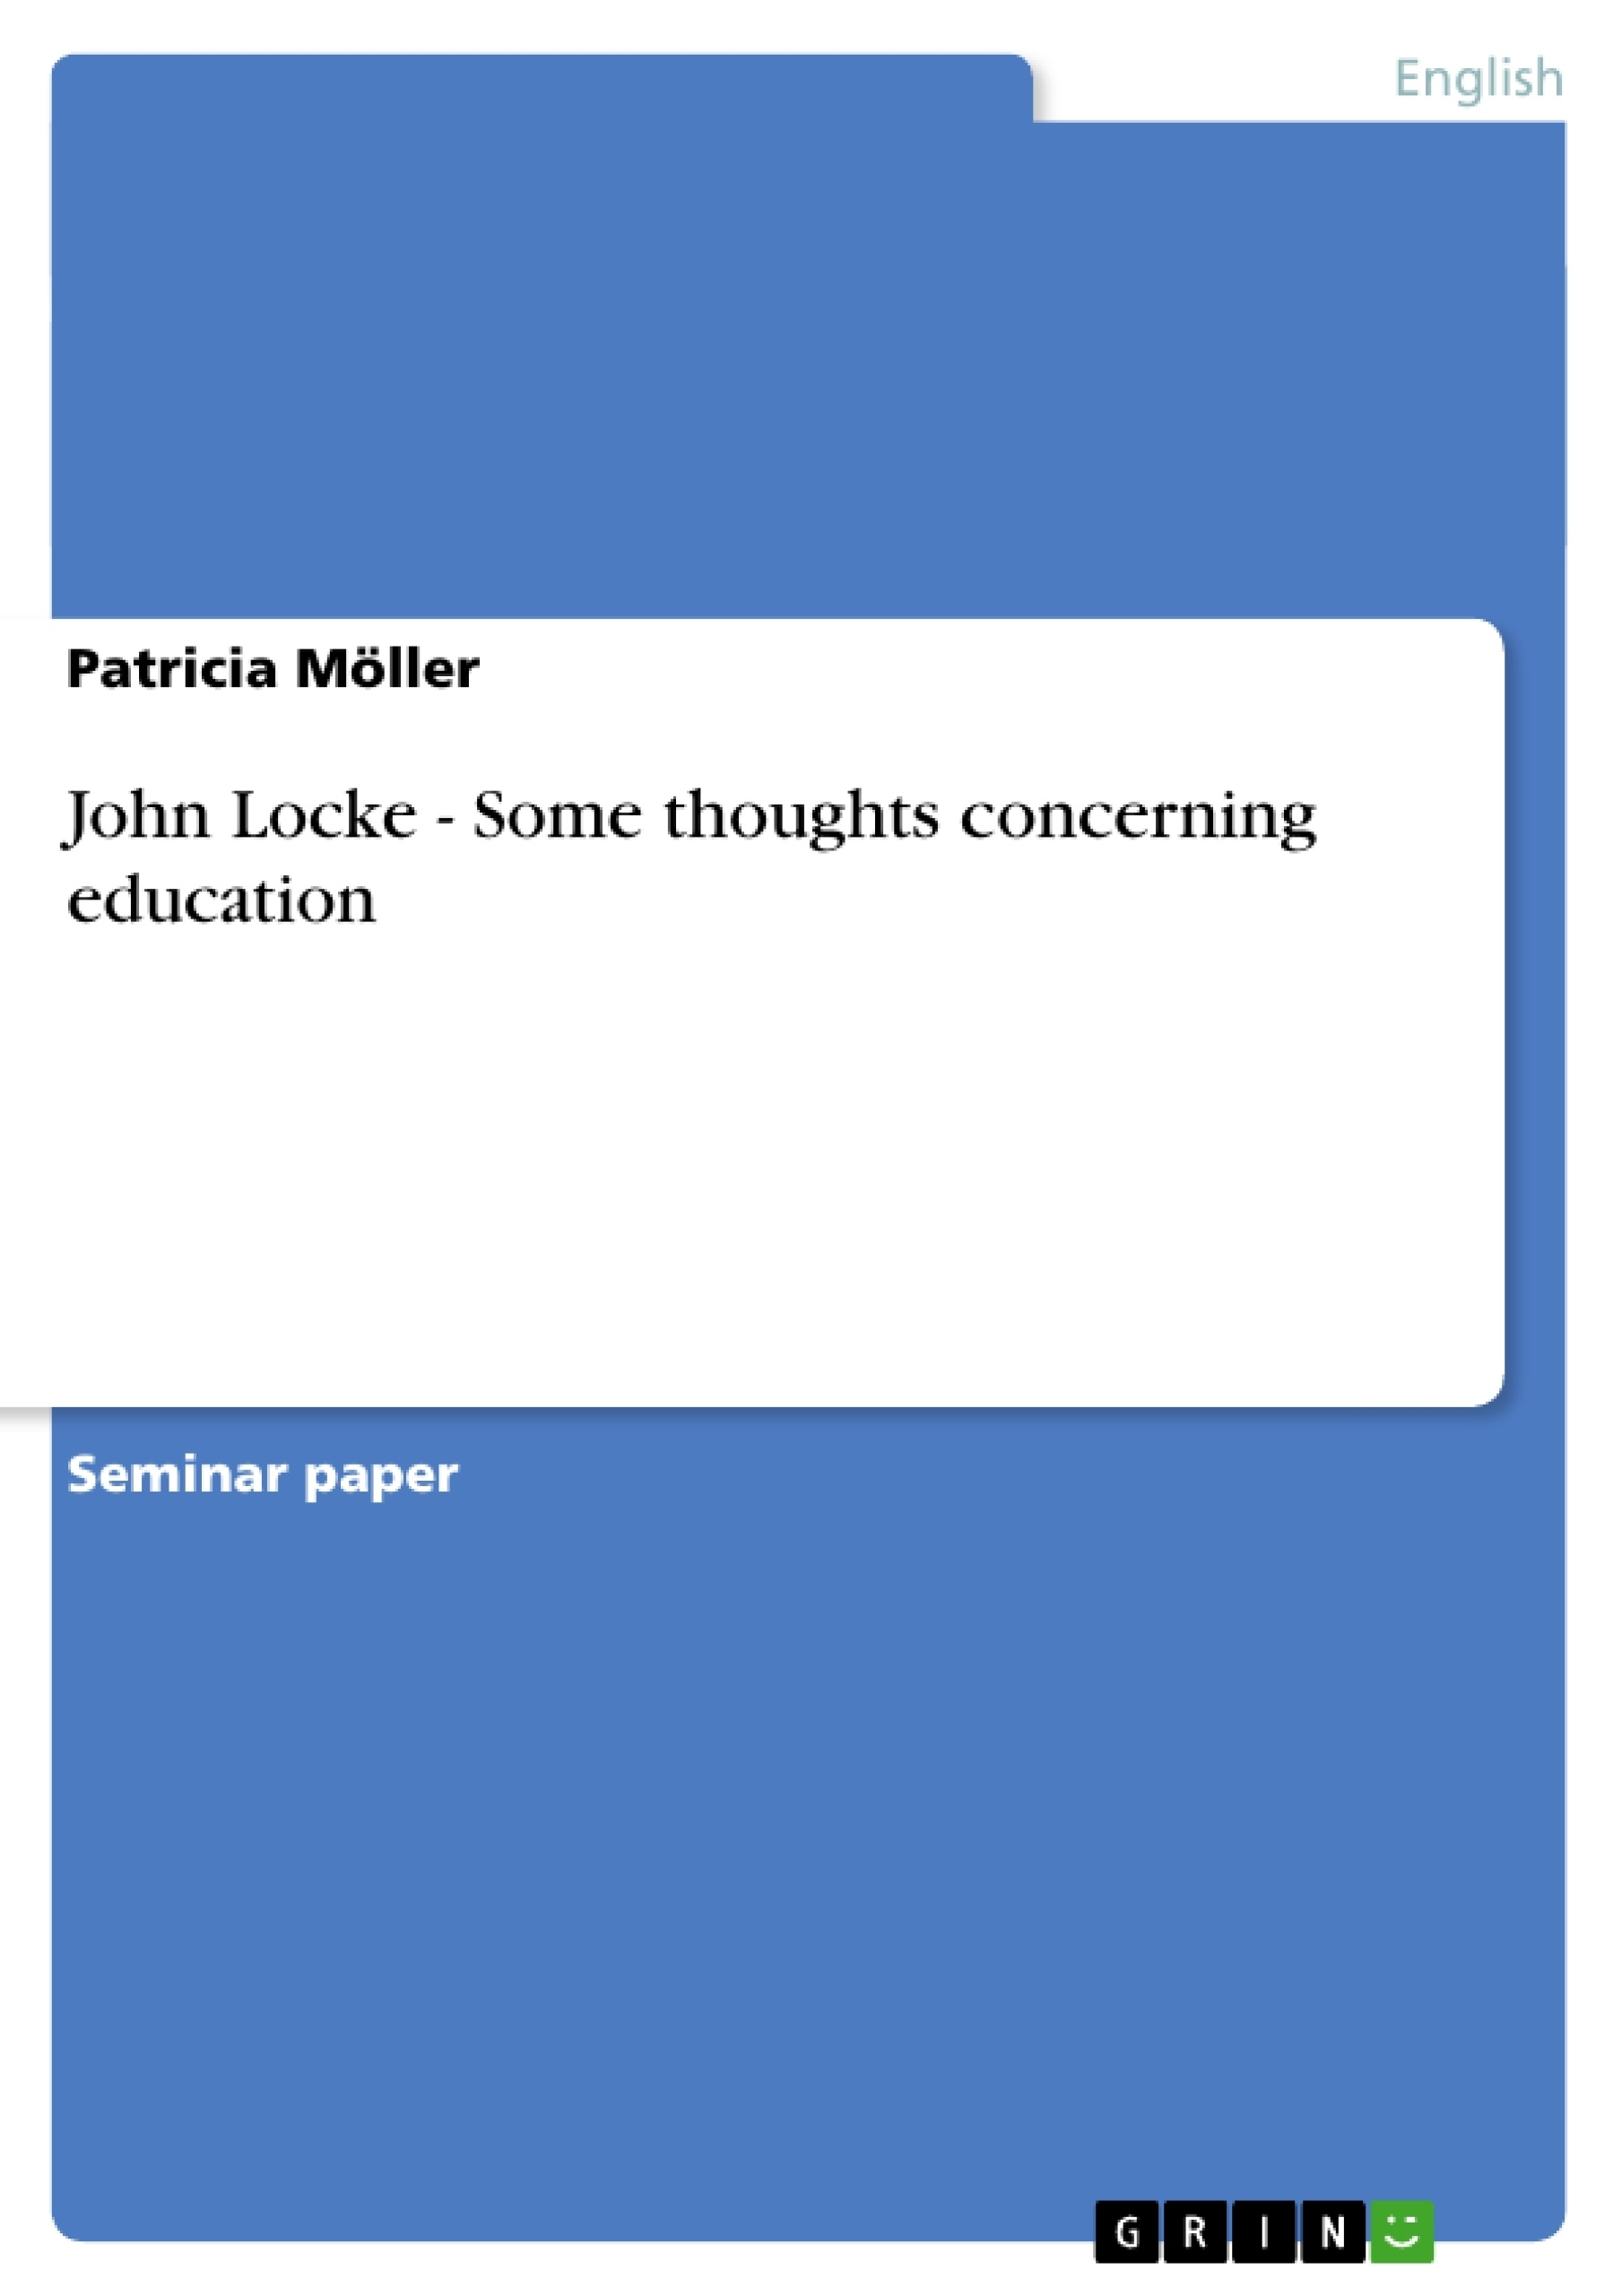 Title: John Locke - Some thoughts concerning education